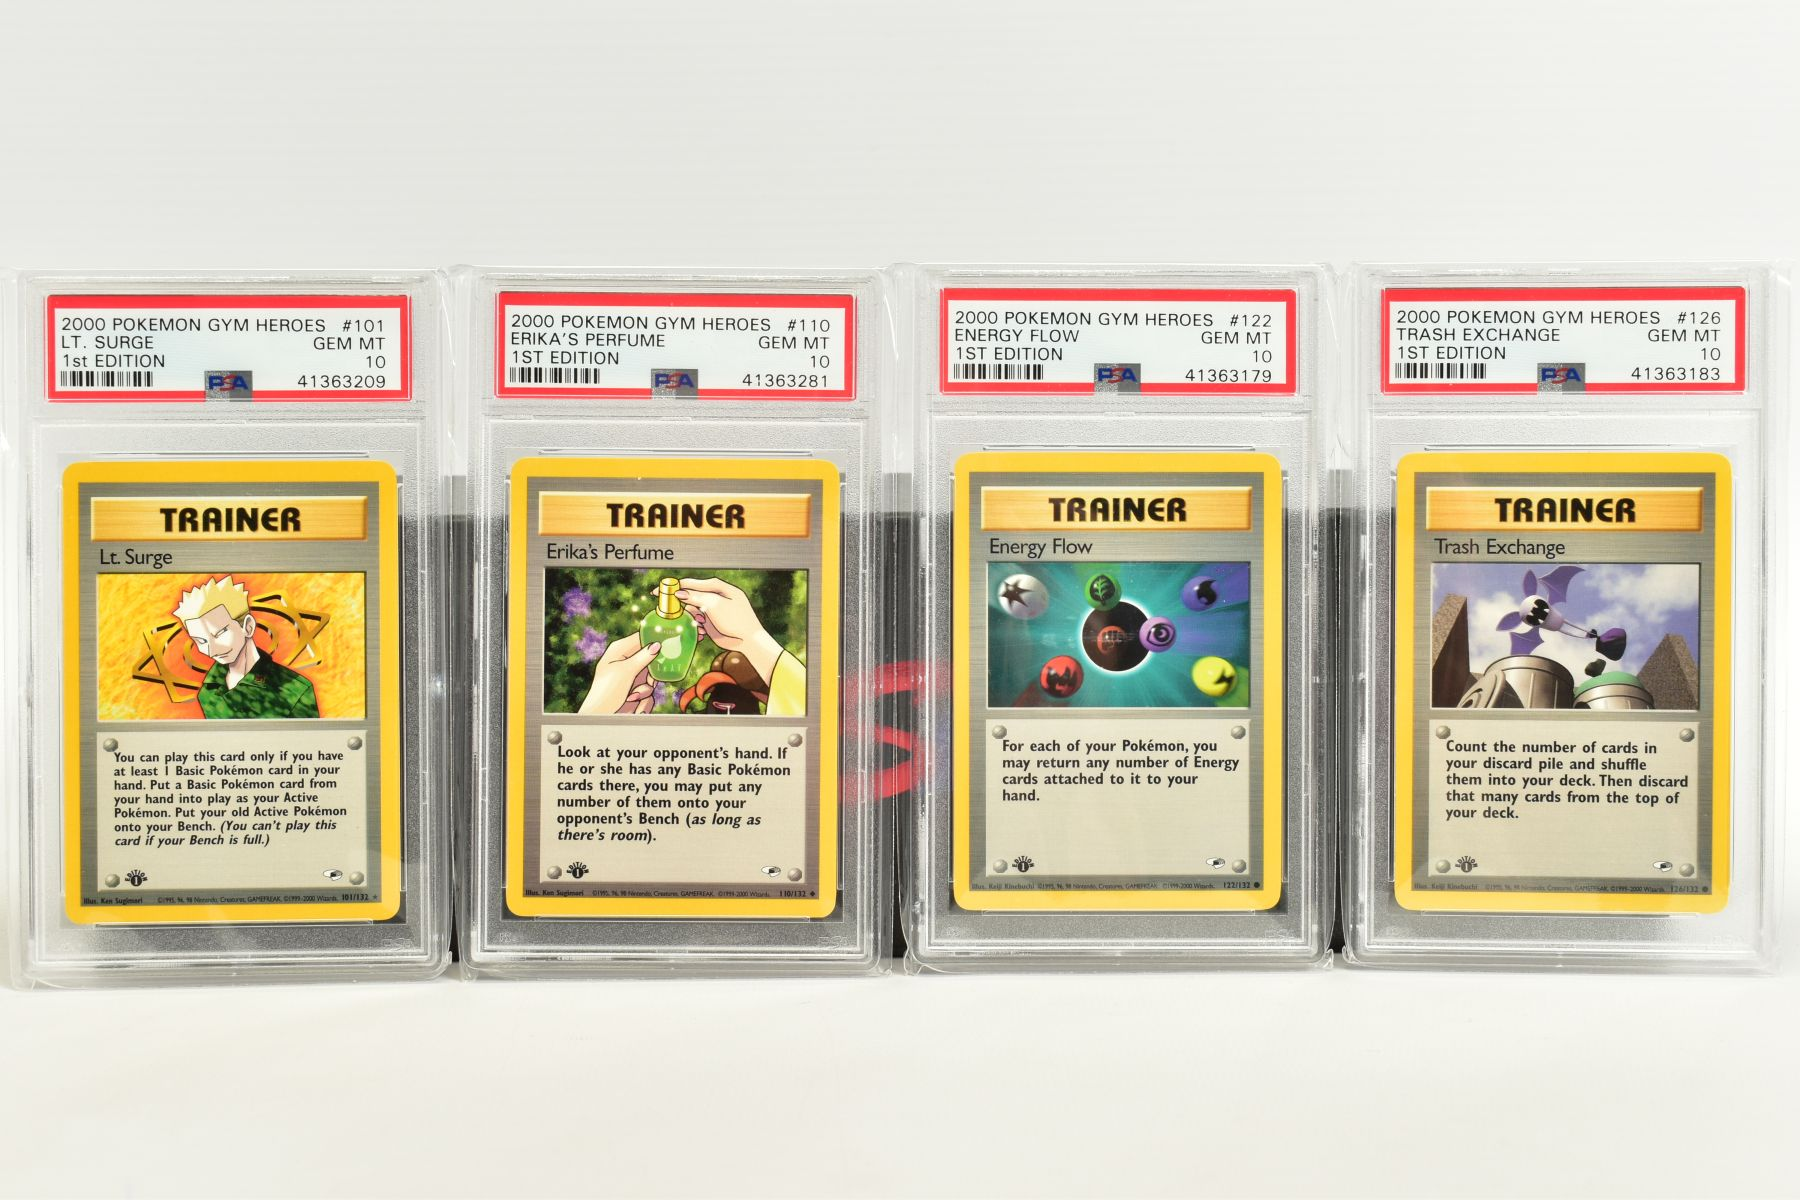 A QUANTITY OF PSA GRADED POKEMON 1ST EDITION GYM HEROES AND GYM CHALLENGE SET CARDS, all are - Image 11 of 12